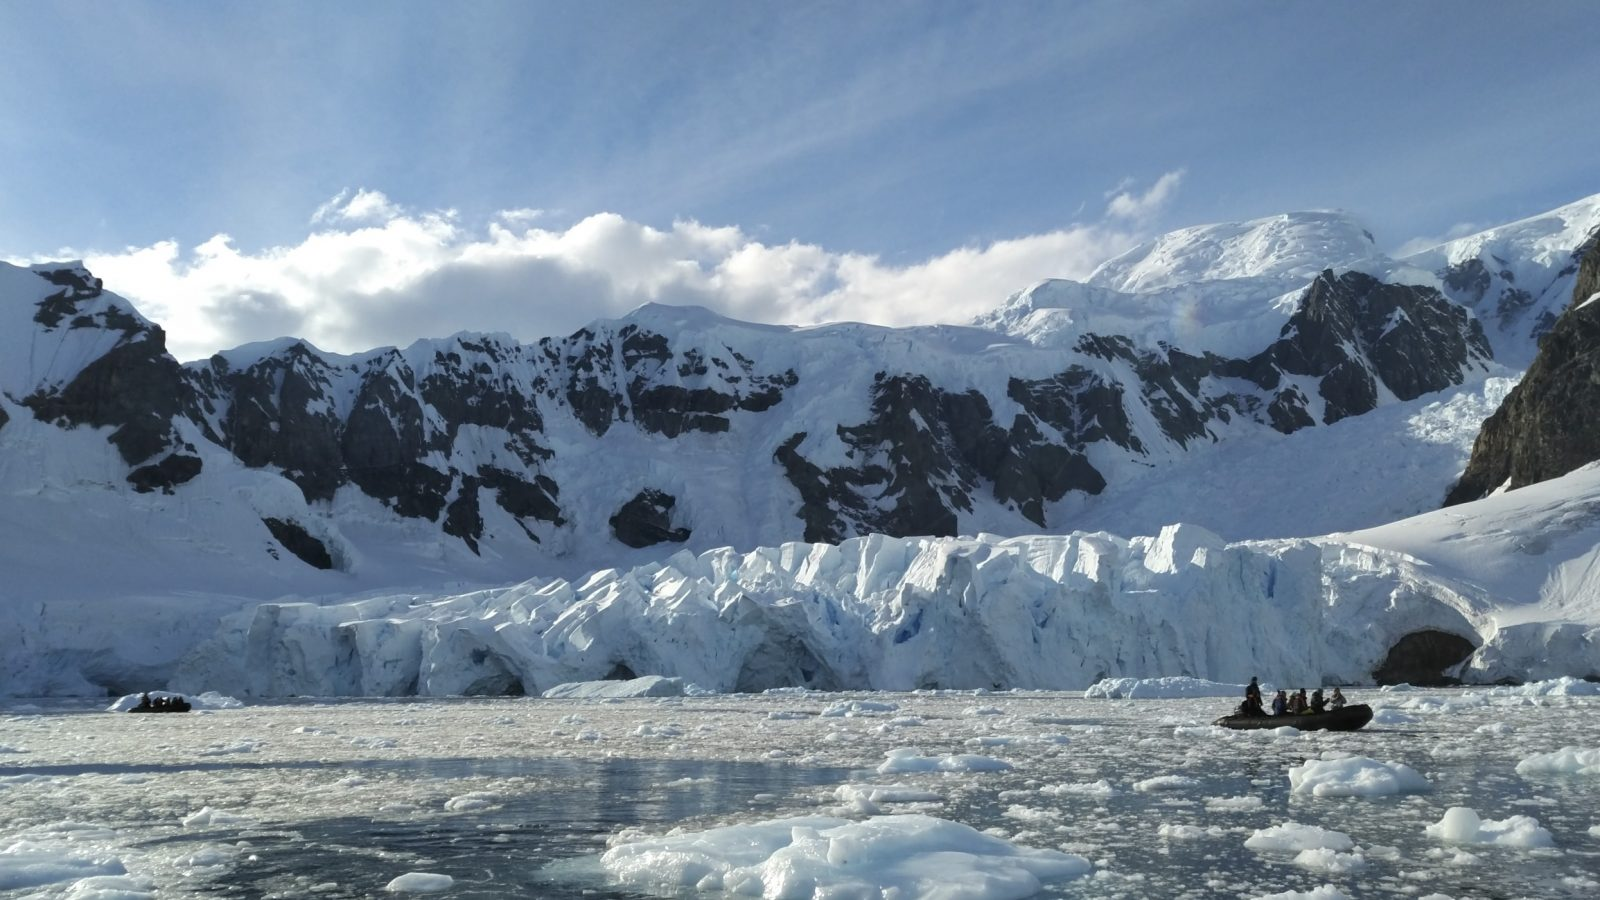 Antarctica: A journey to the worlds end Day 1 - Day 4